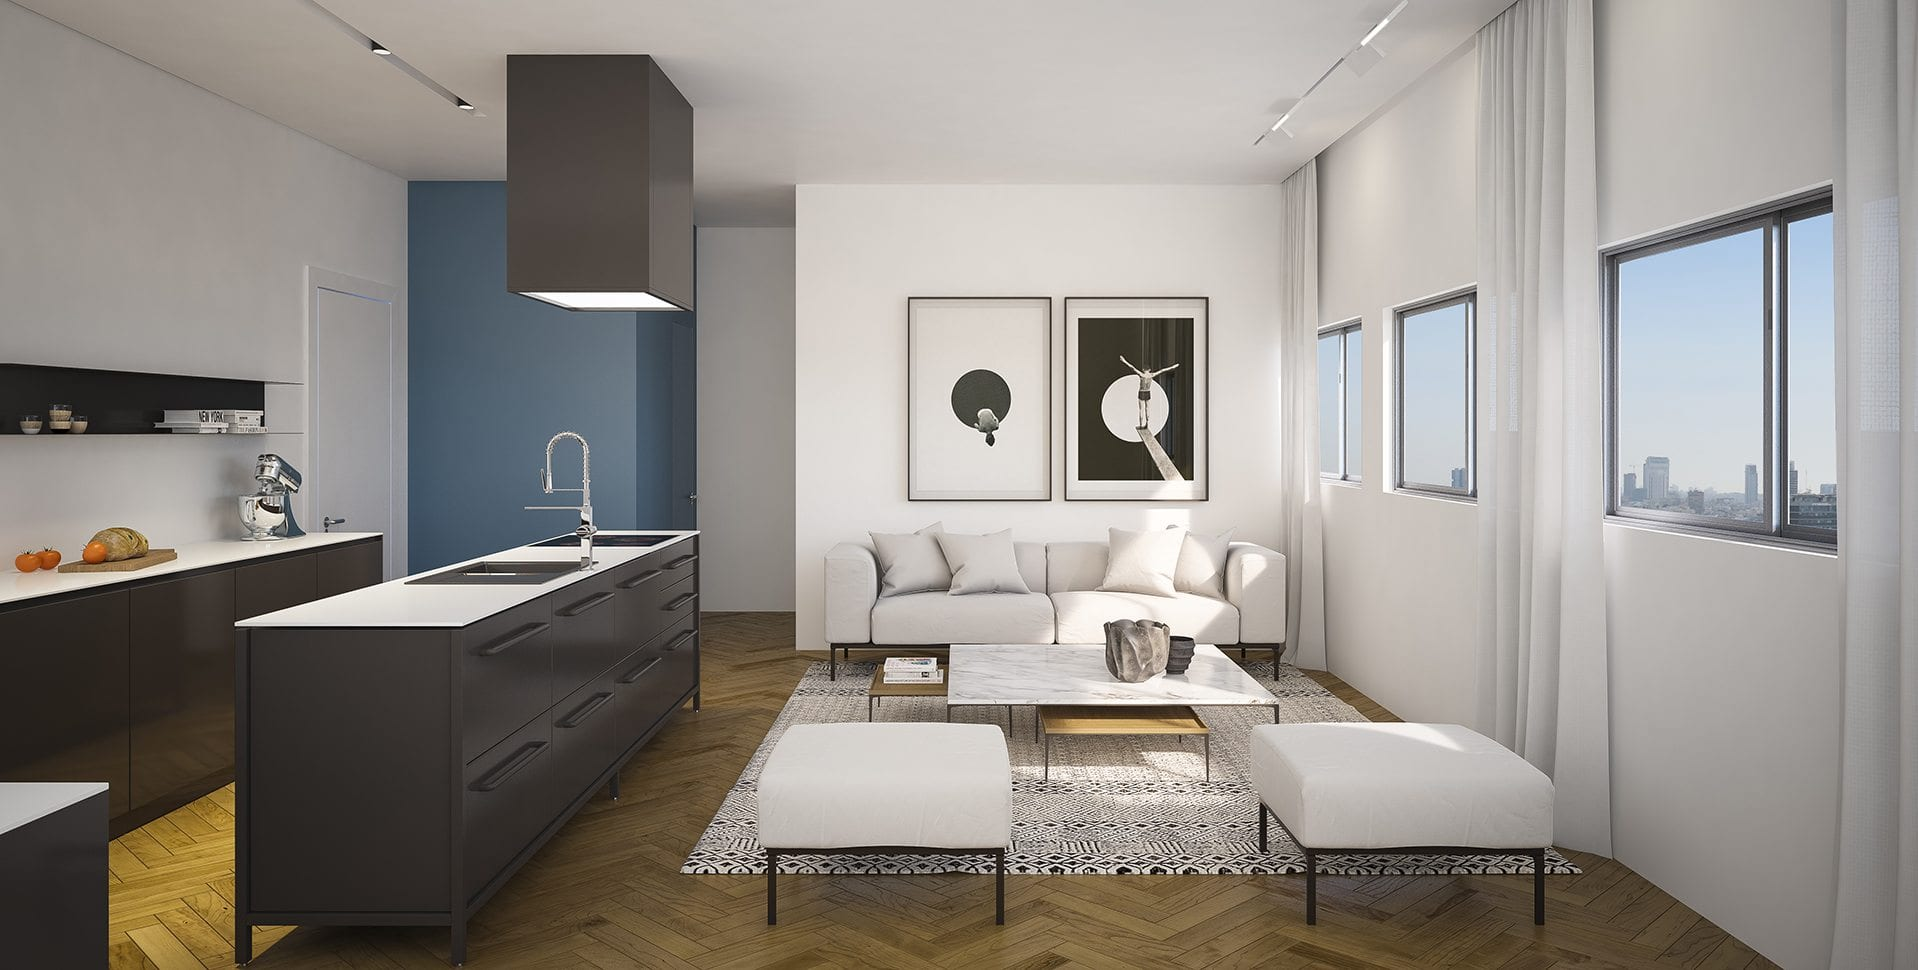 Maayan-Golan_Architectural-Visualization_ apartment-kitchen-living-room_interior-visualization_ Dizengoff-189-tel-aviv_05